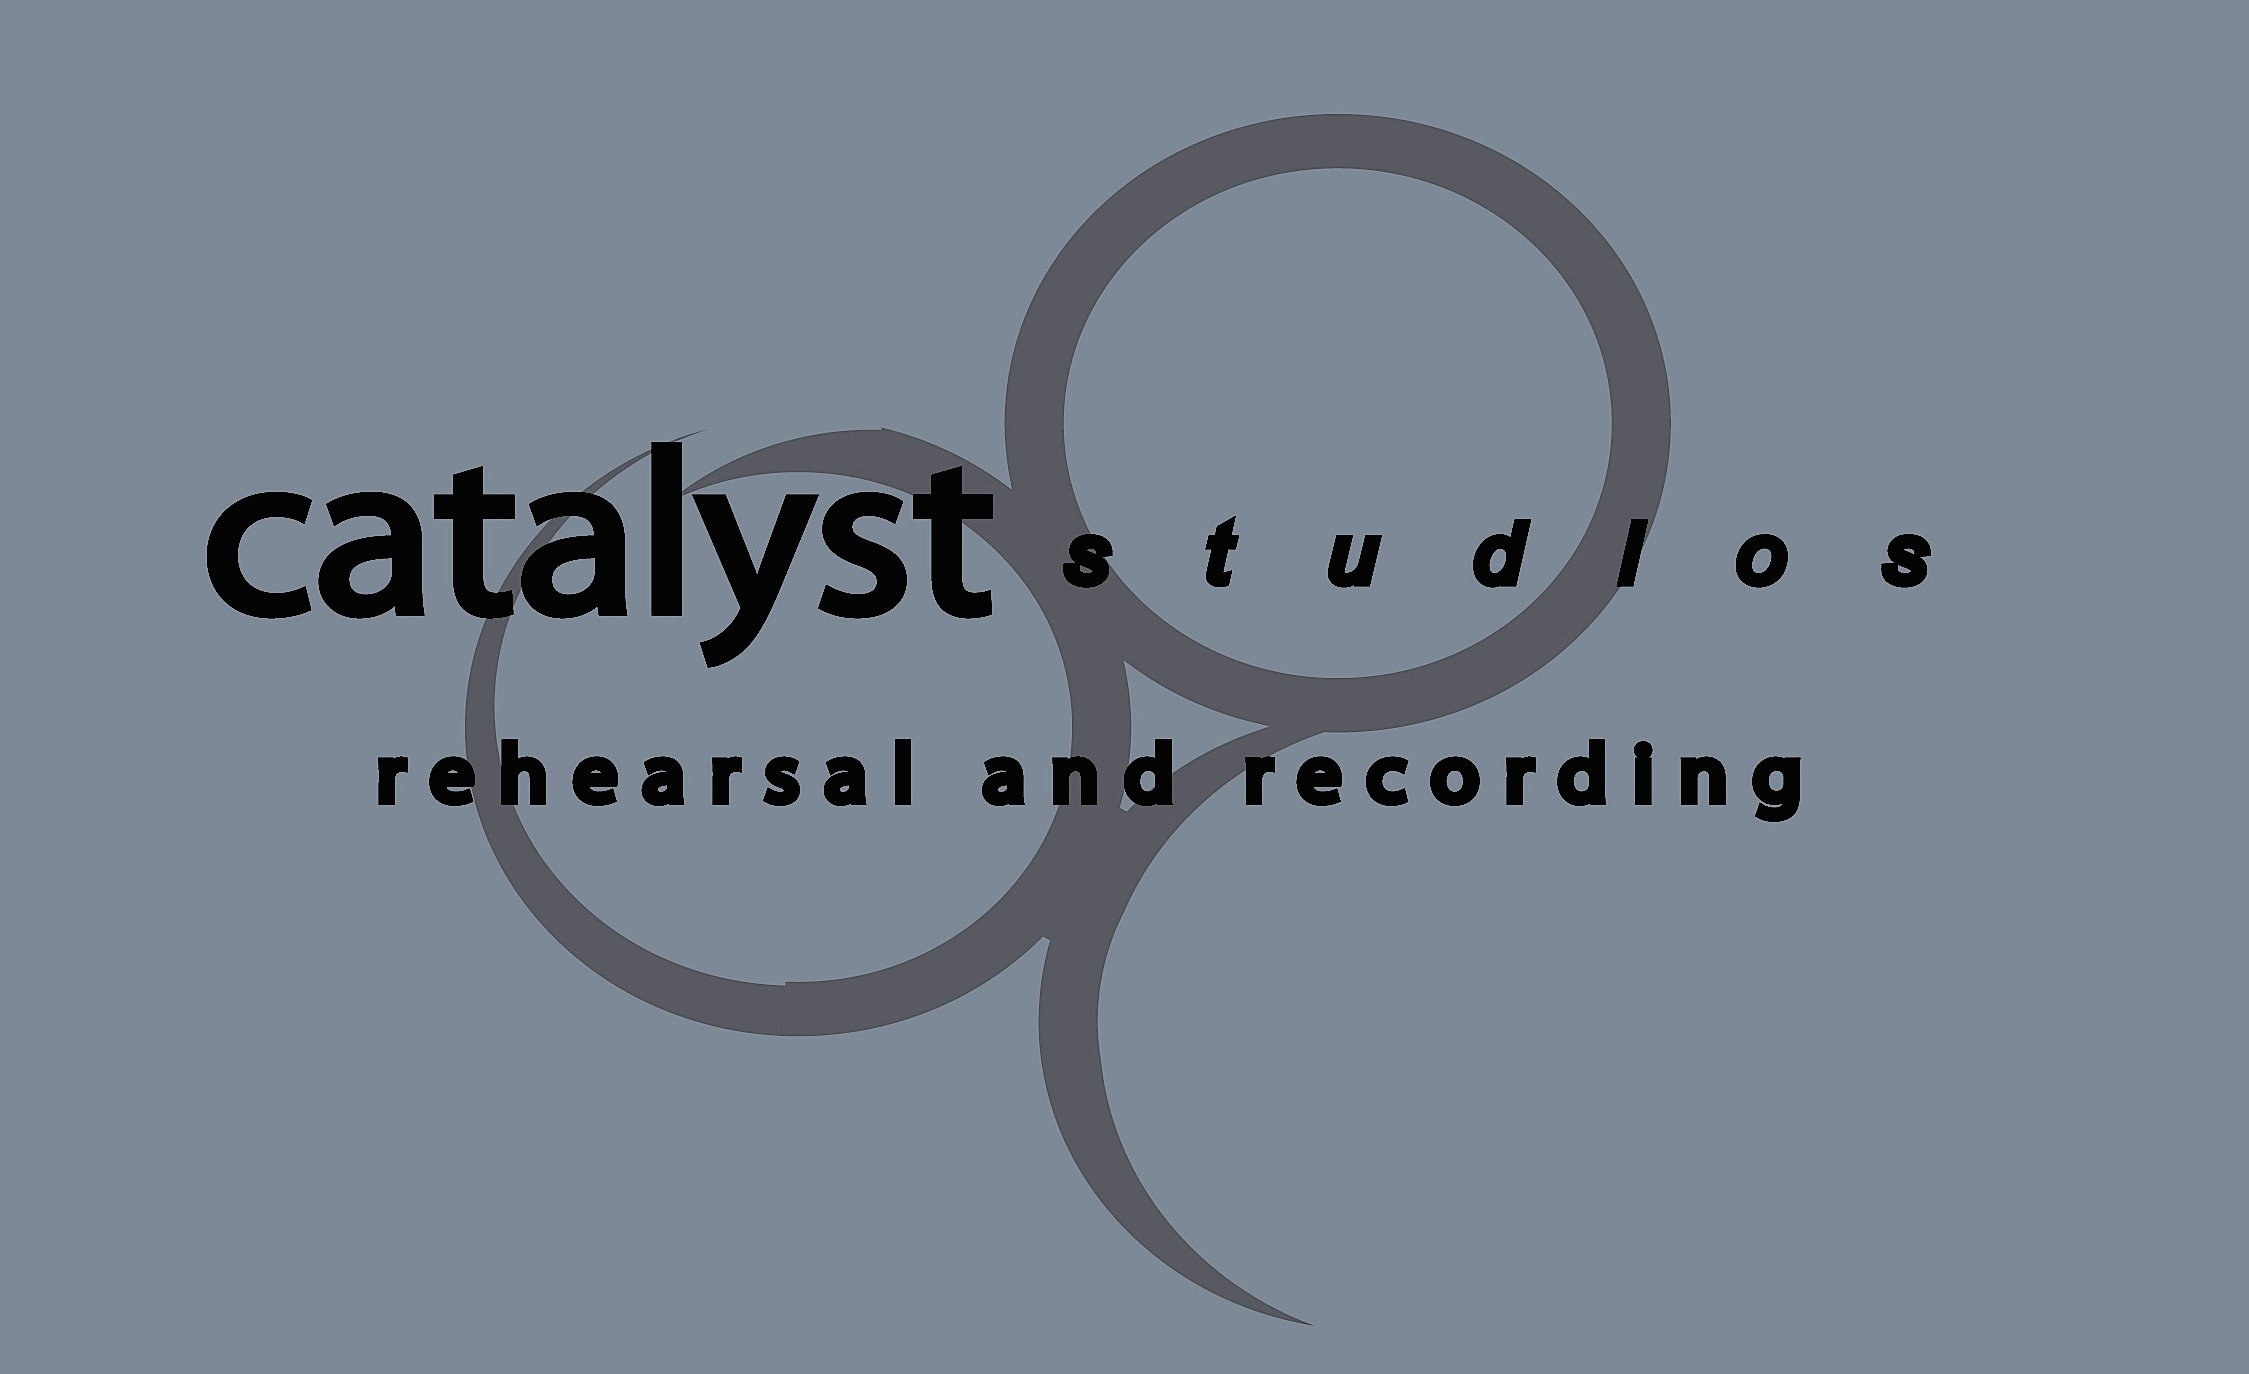 www.catalyst-studios.co.uk